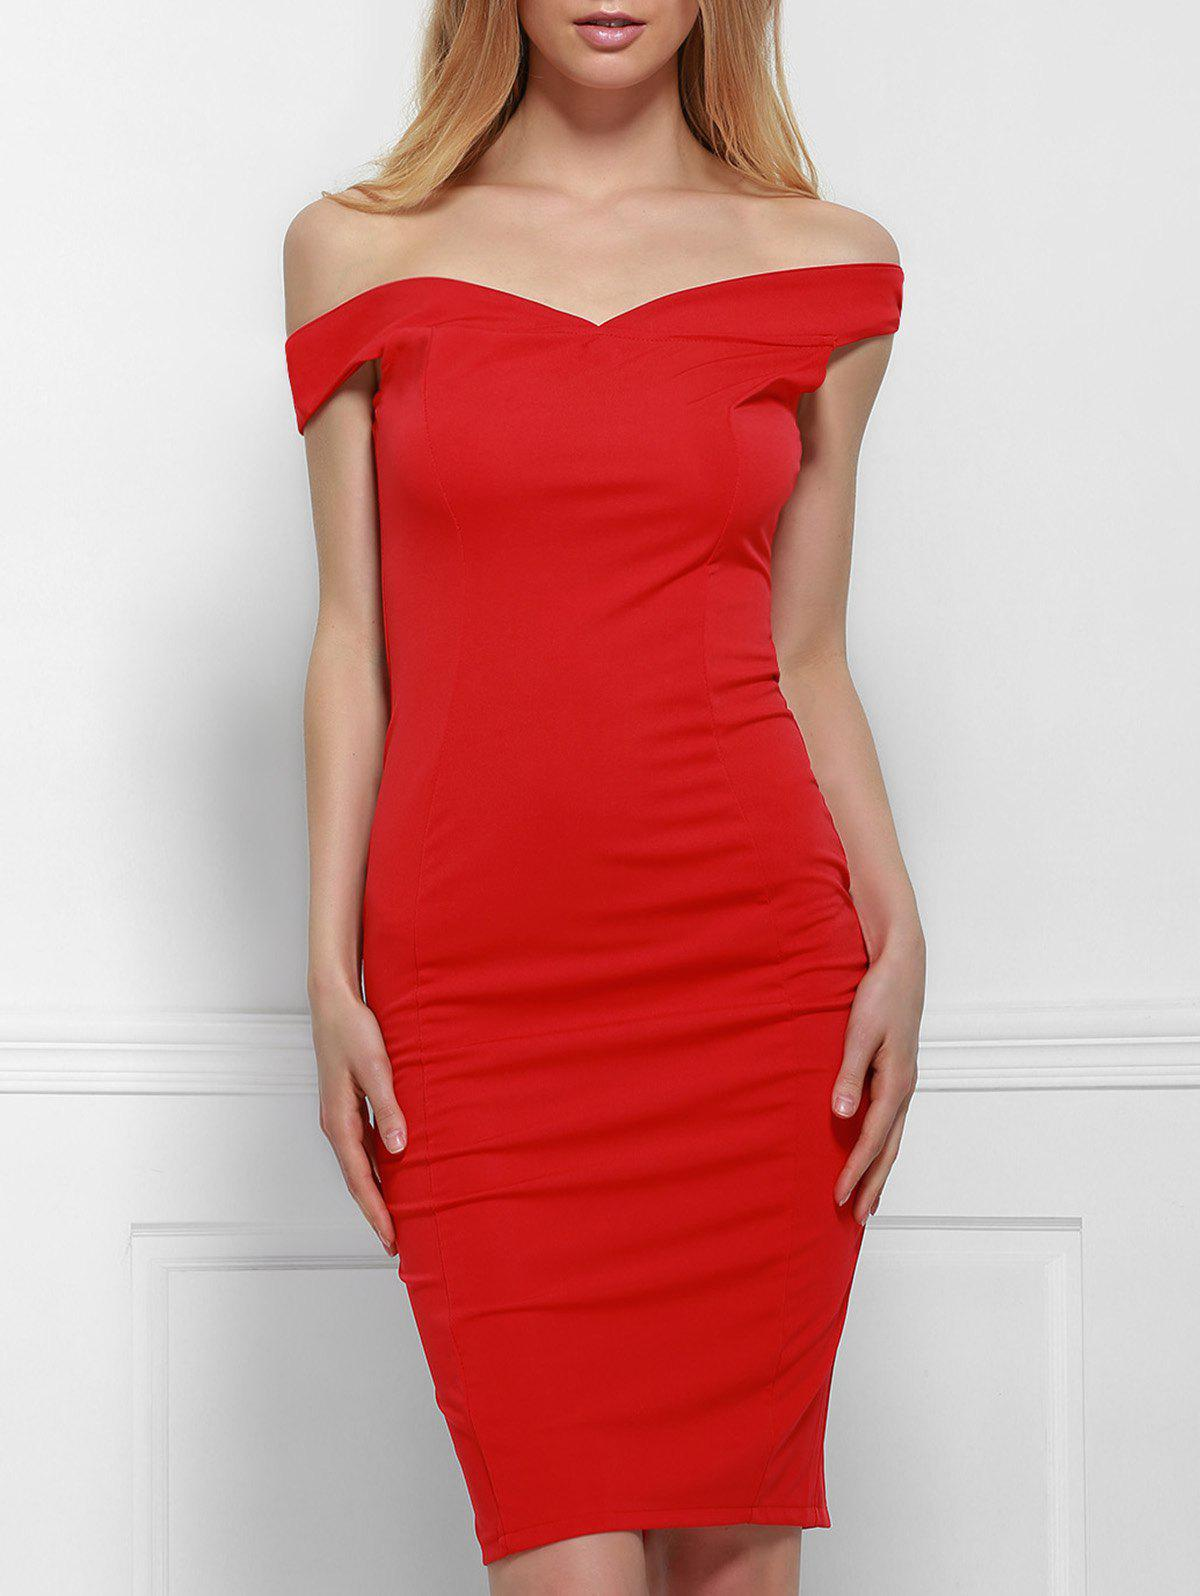 Sexy V Neck Convertible Way Bodycon Red Women's Dress - RED XL